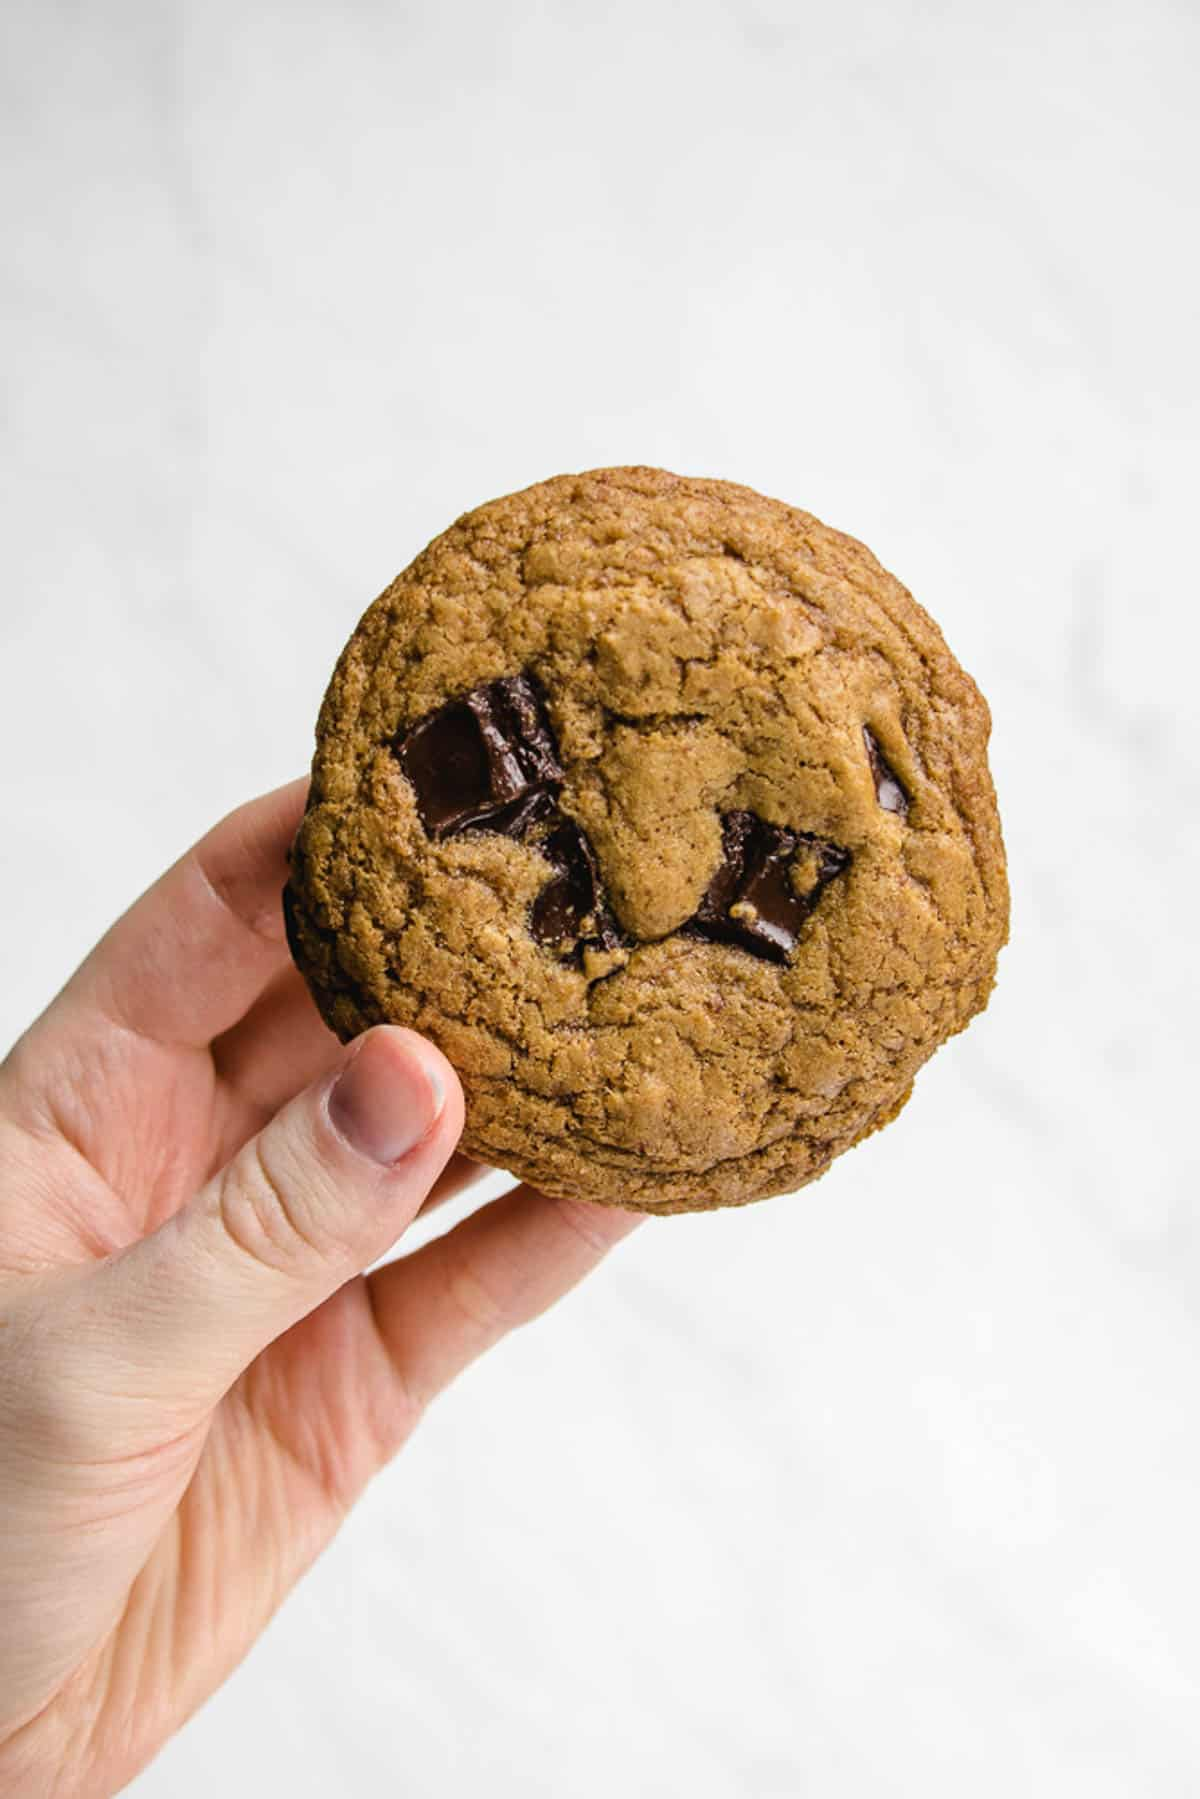 Holding a chocolate chip cookie.